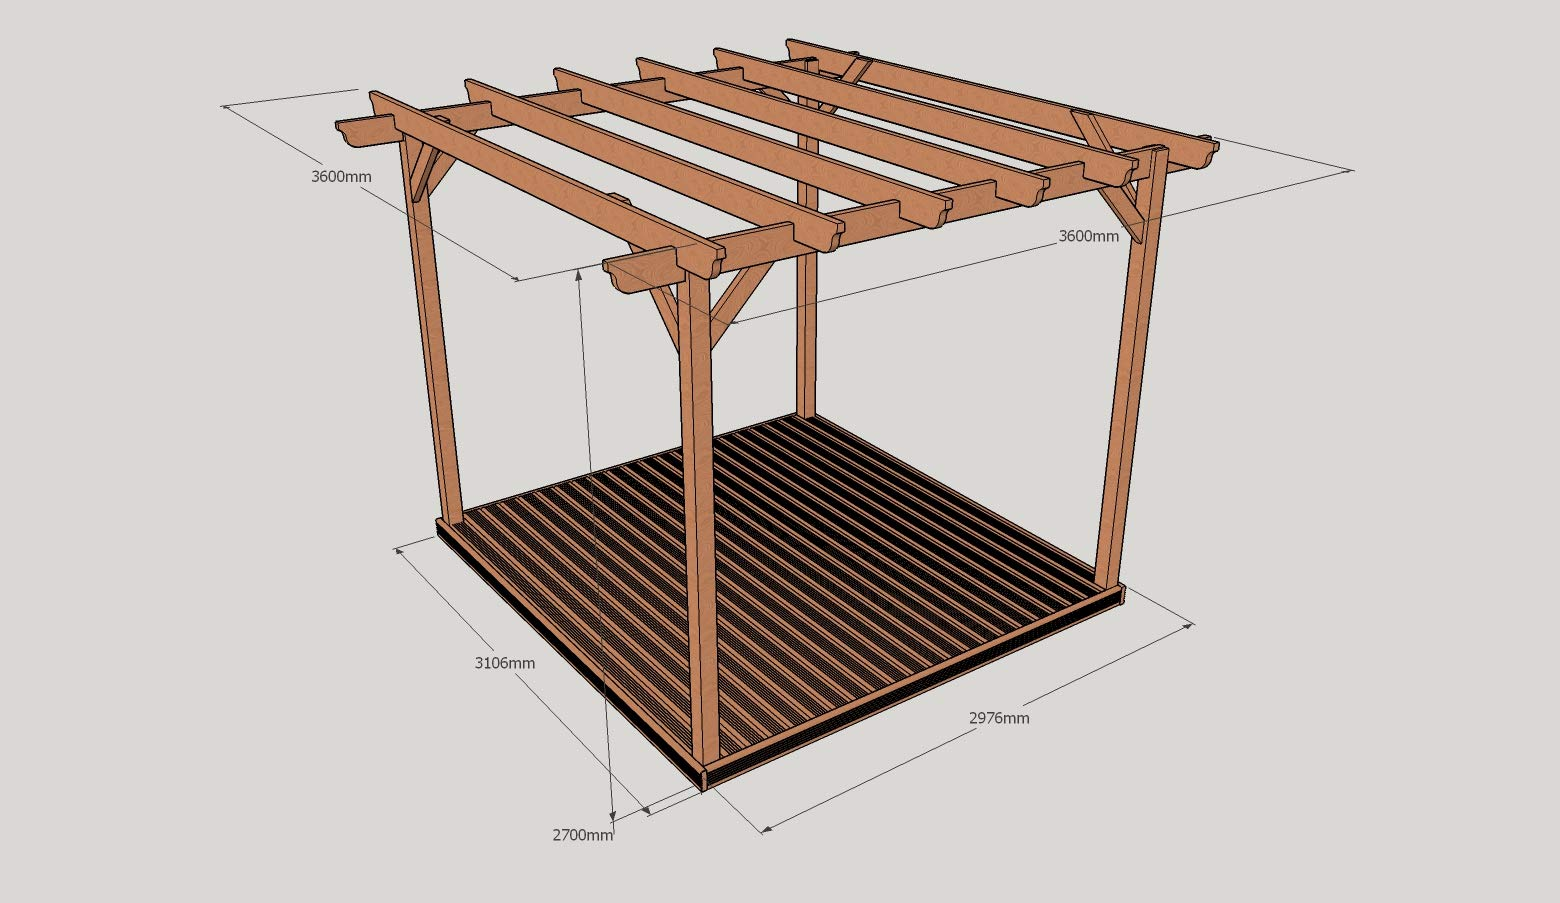 Rutland County Garden Furniture Kit de Pergola de Madera y Cubiertas: Amazon.es: Jardín